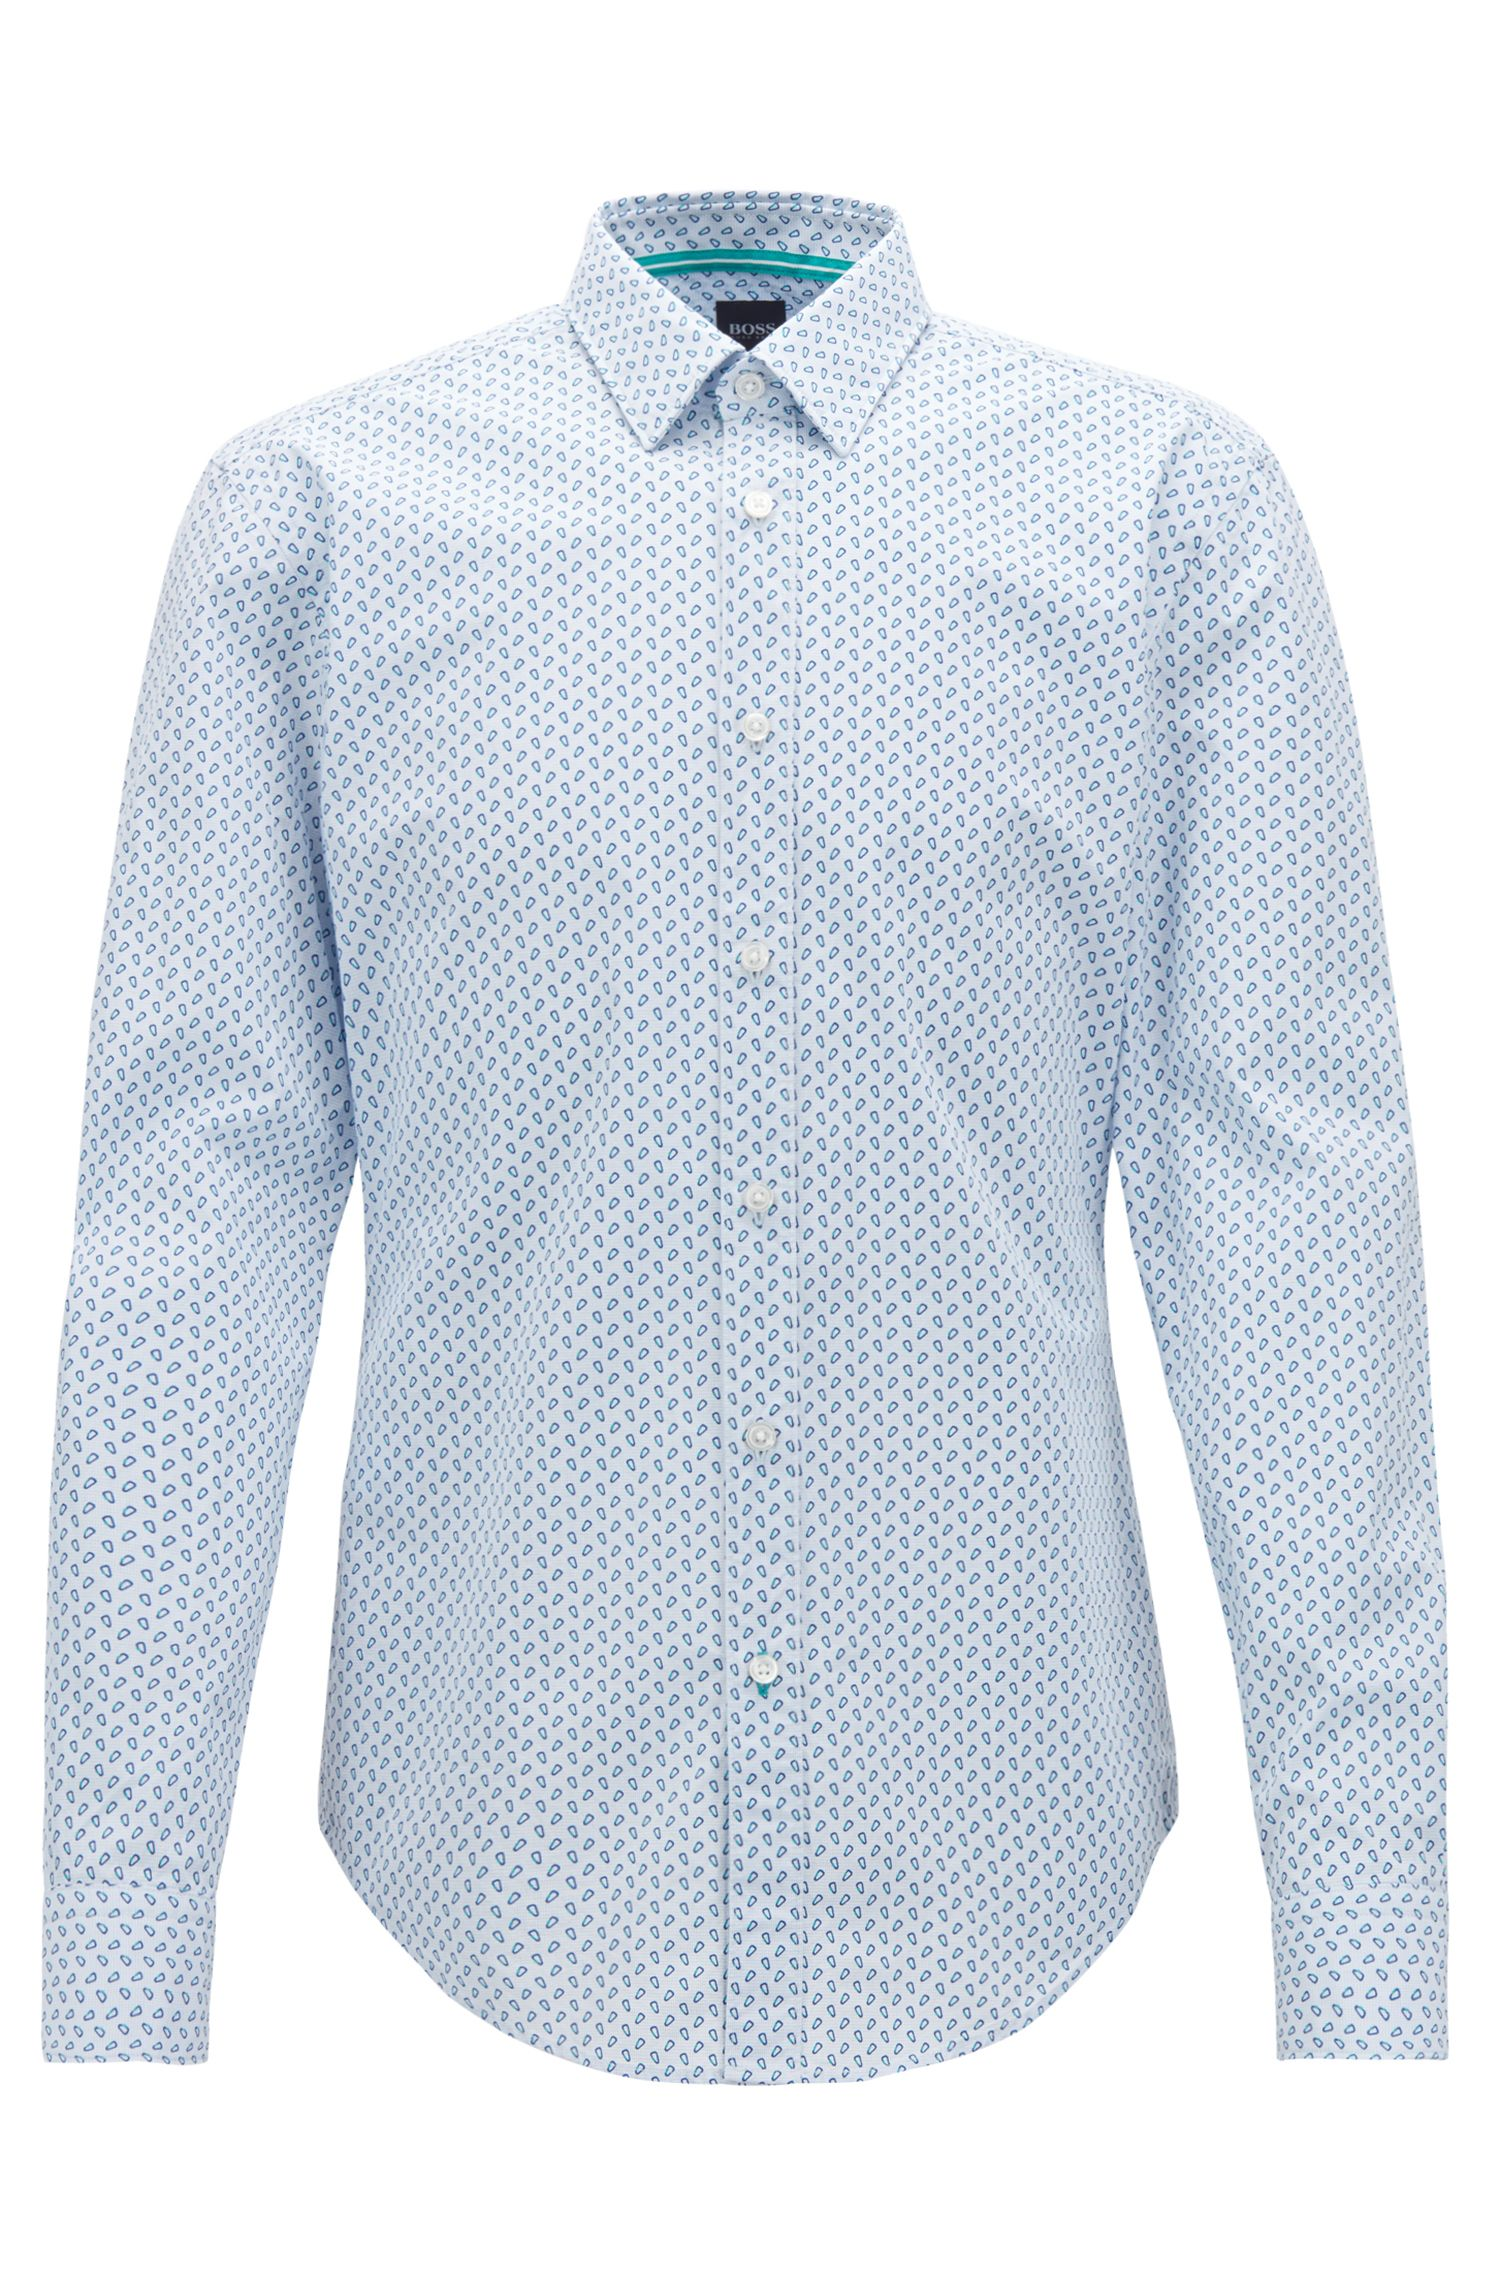 Slim-fit shirt in printed micro-check cotton poplin, Open Blue